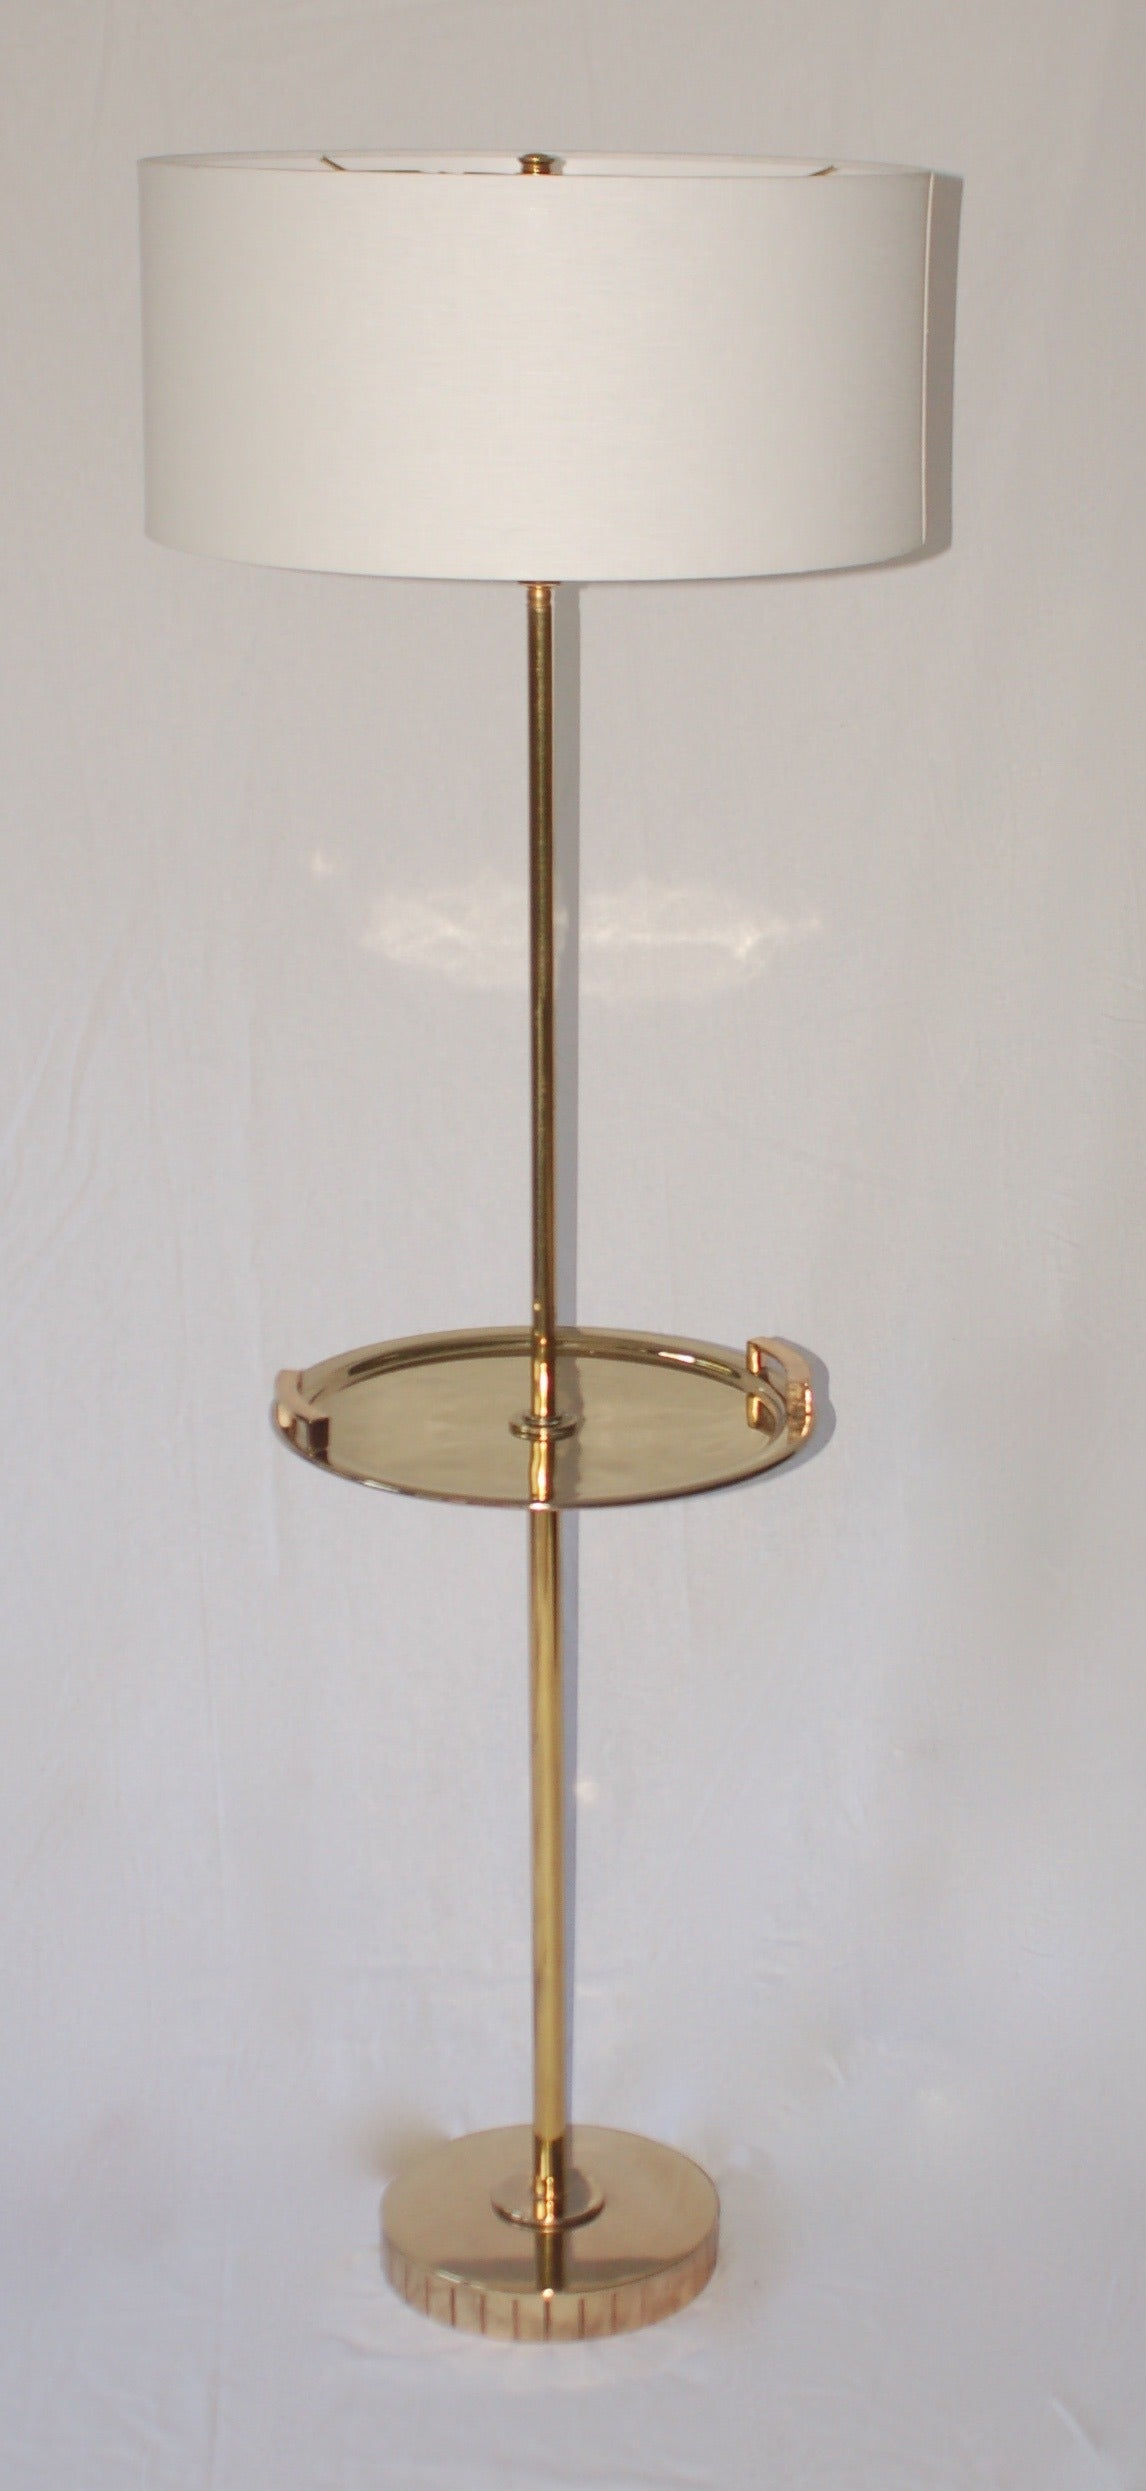 brass floor standing lamp with brass tray table at 1stdibs. Black Bedroom Furniture Sets. Home Design Ideas